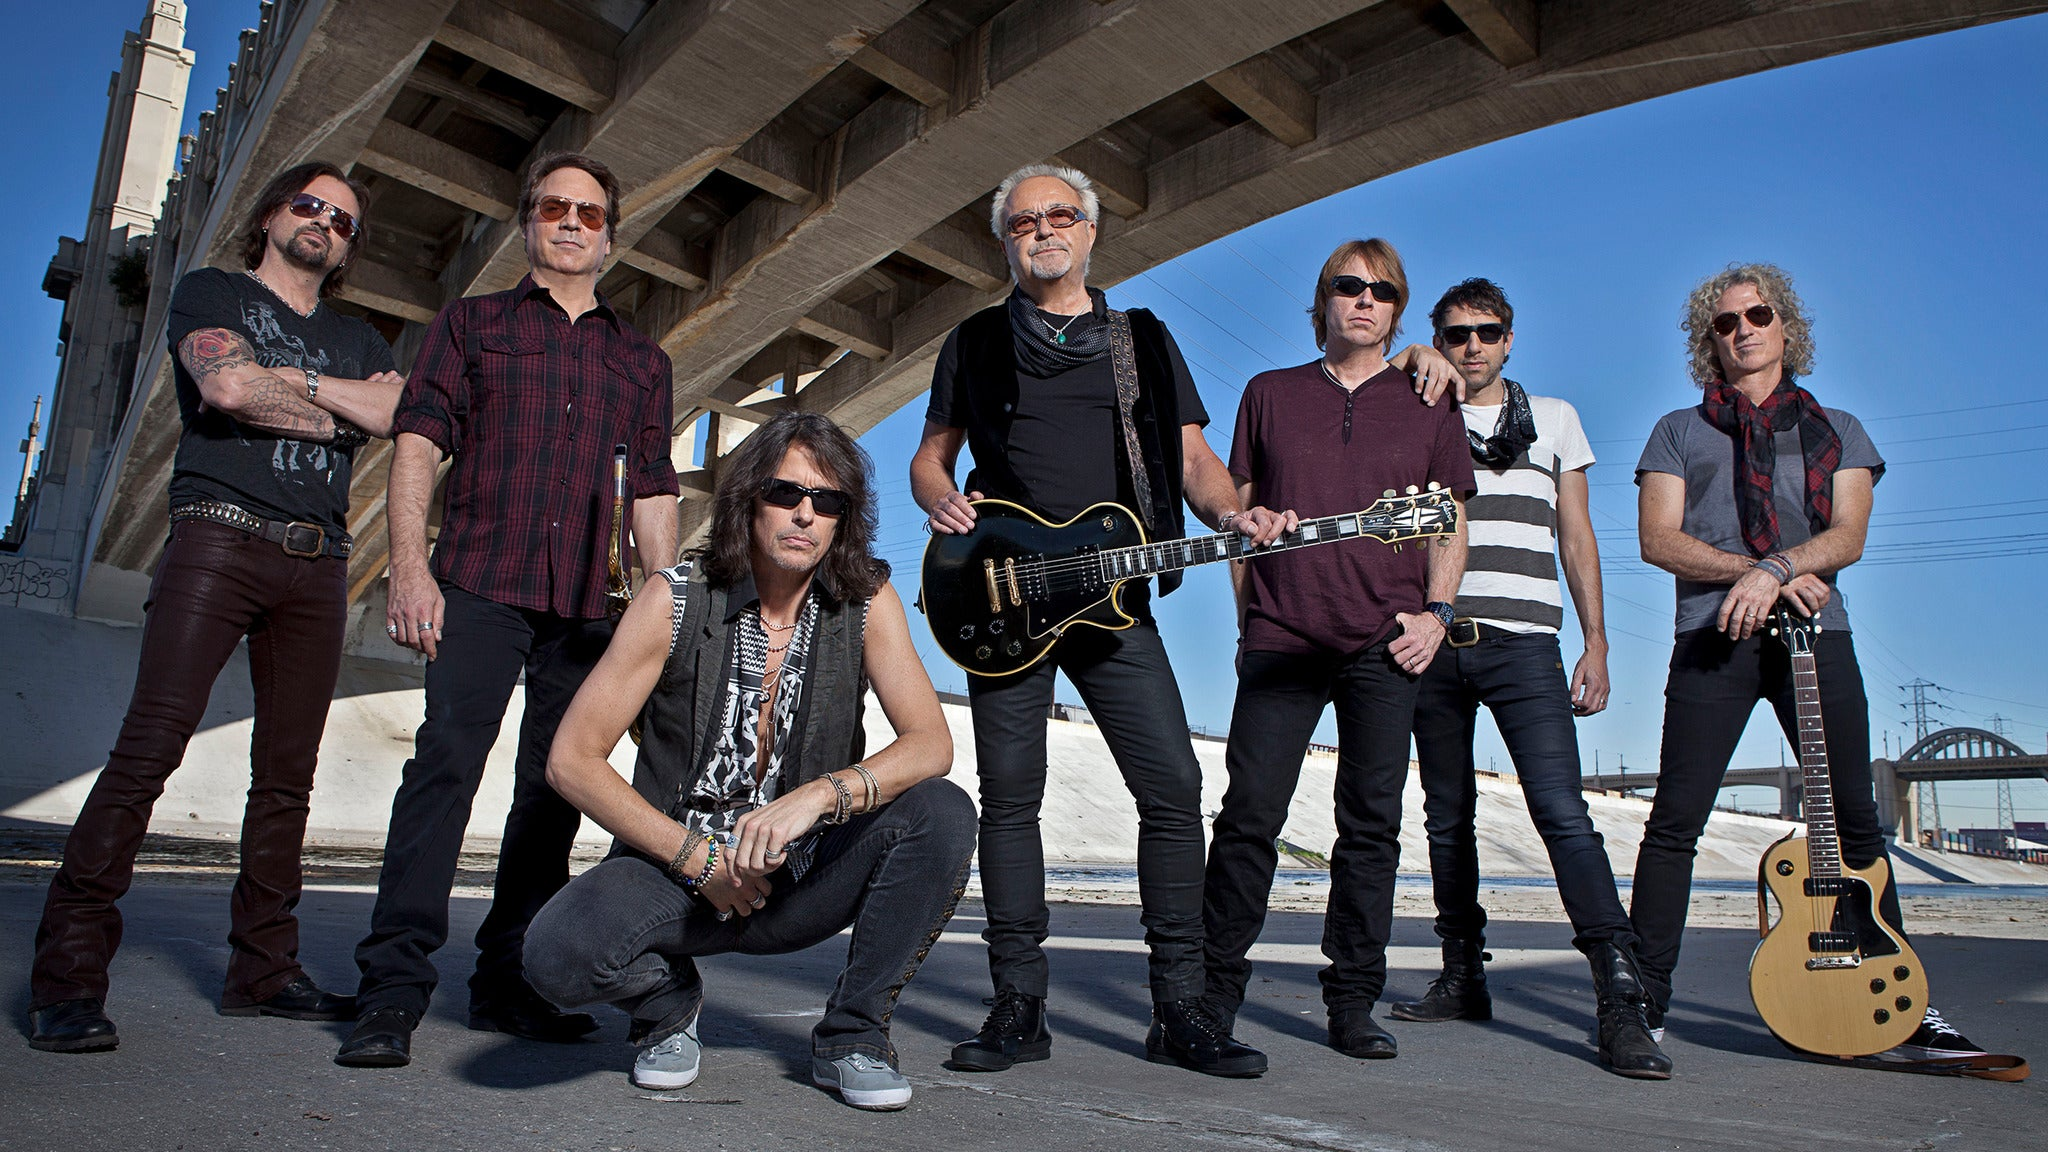 Foreigner at Butte Civic Center - MT